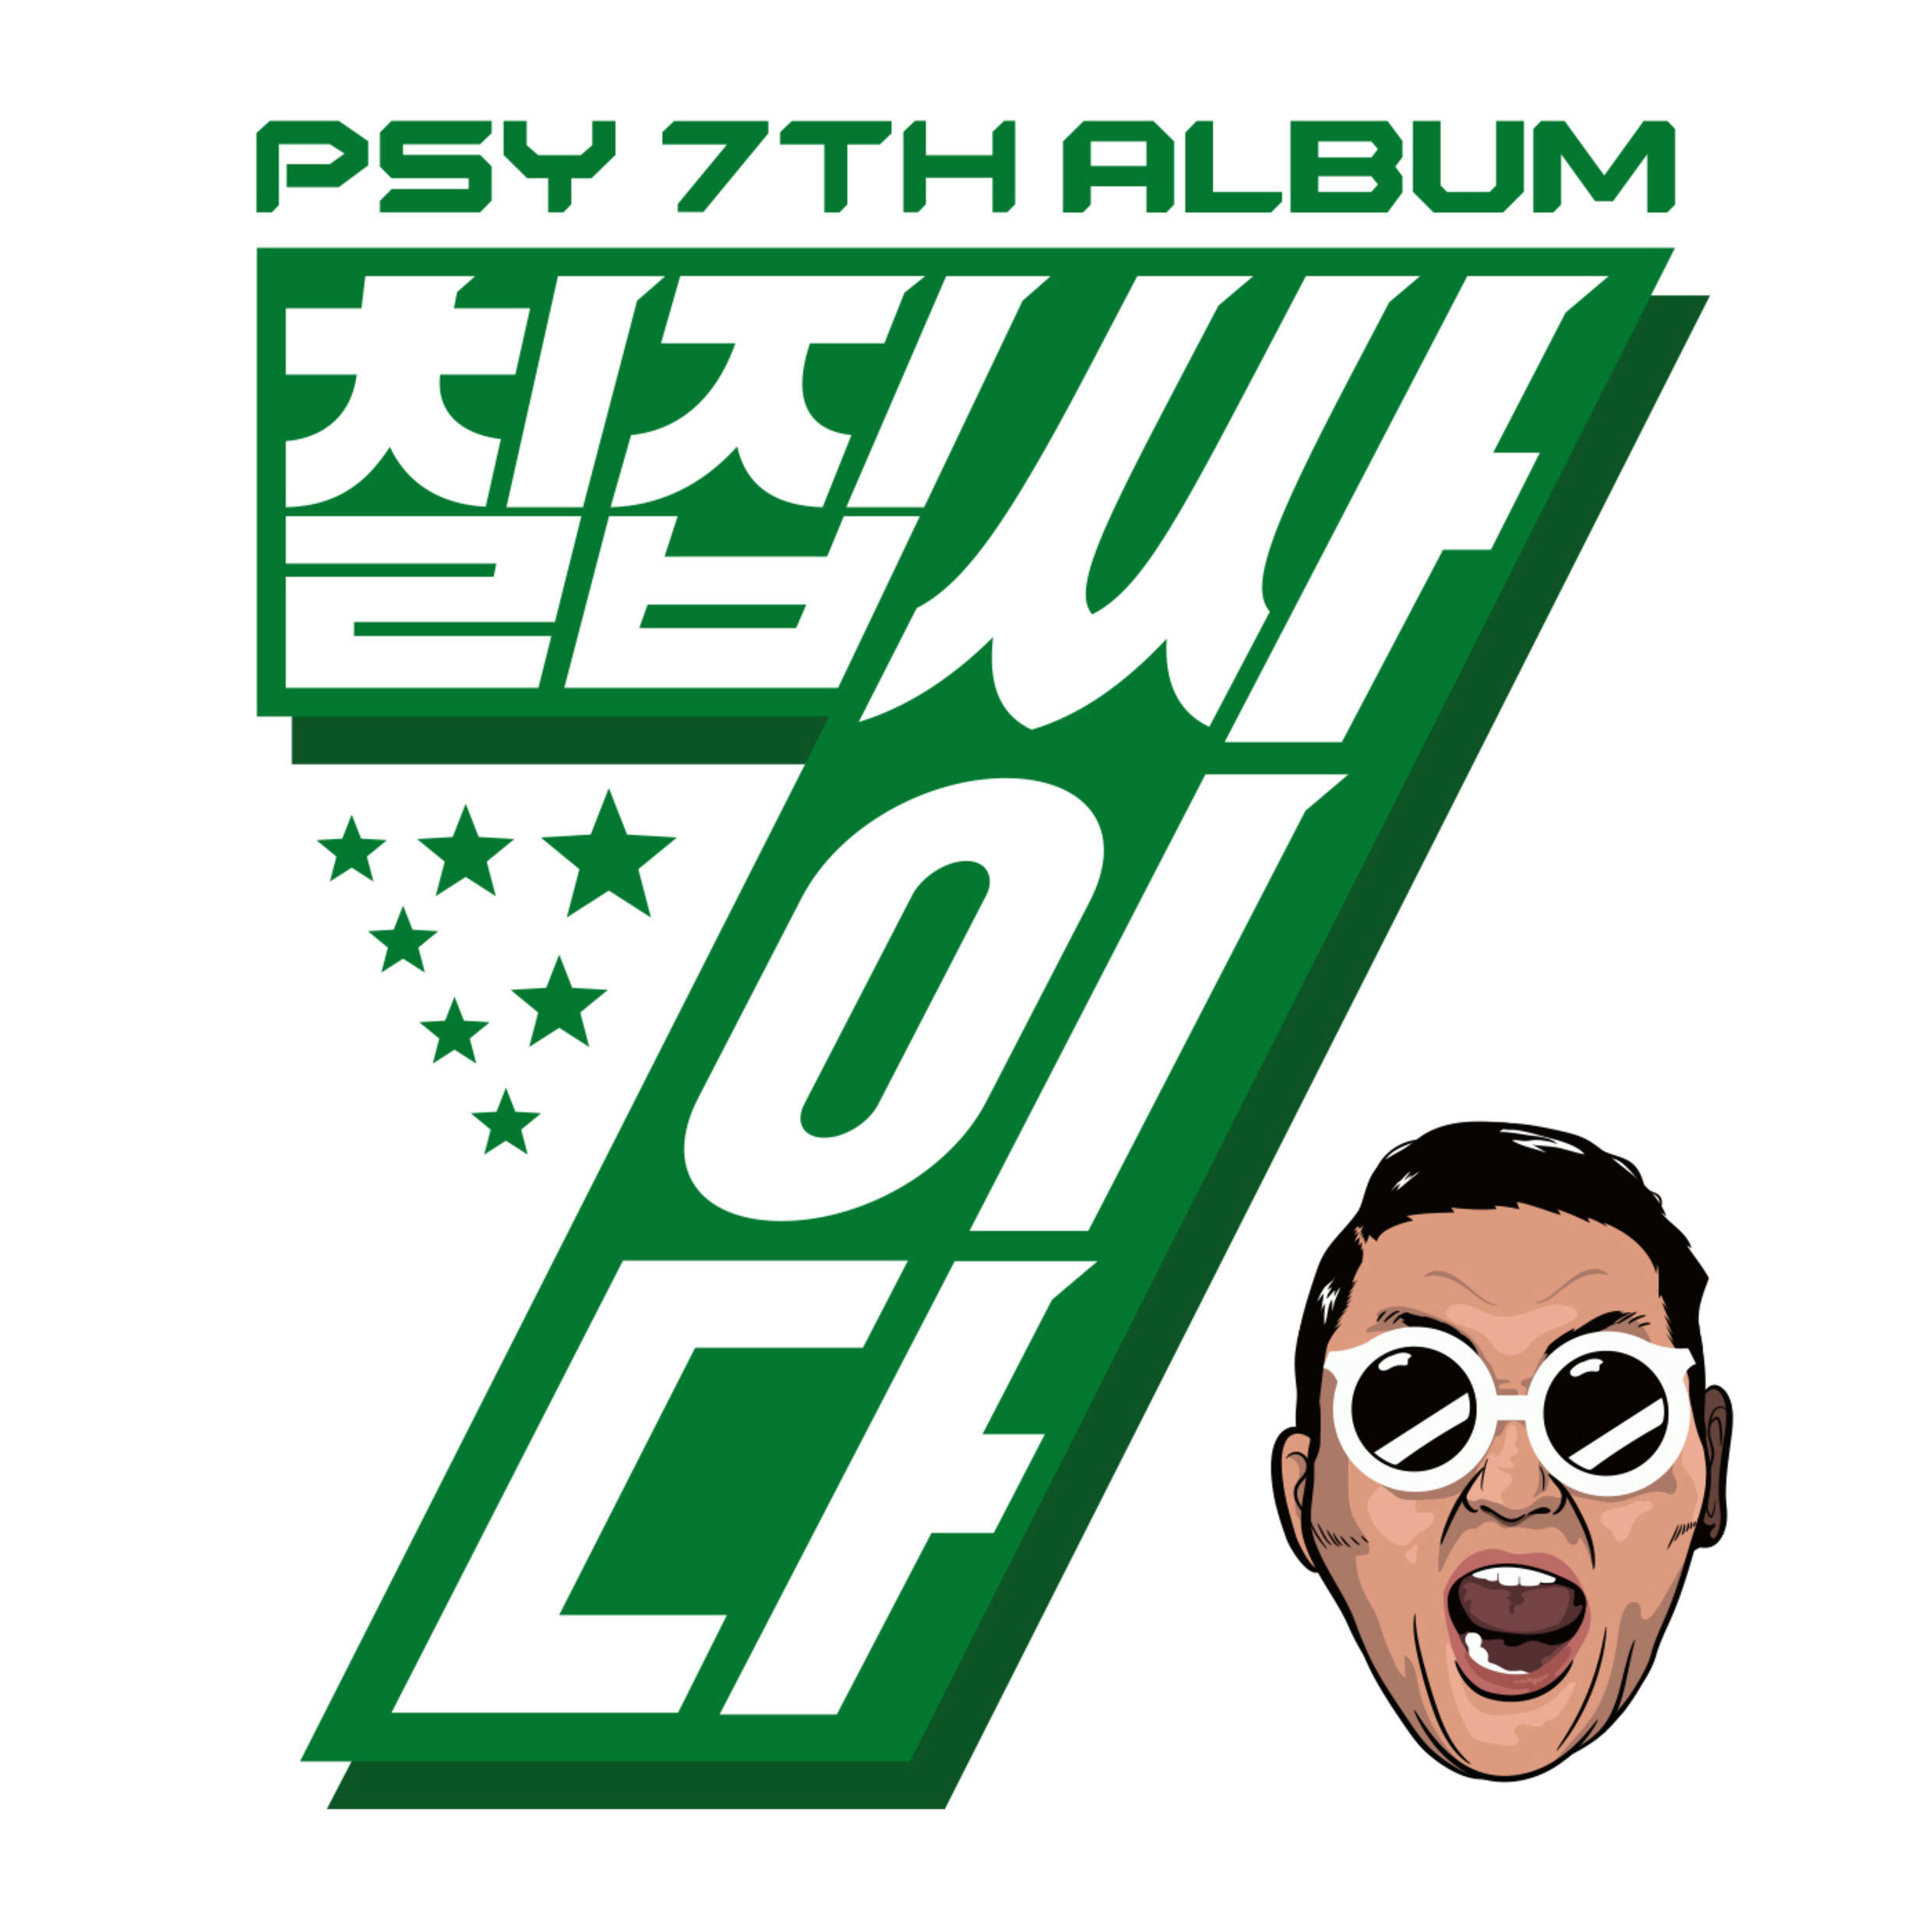 PSY The 7th Album (2015) English Album HQ Mp3 Songs Listen And Download